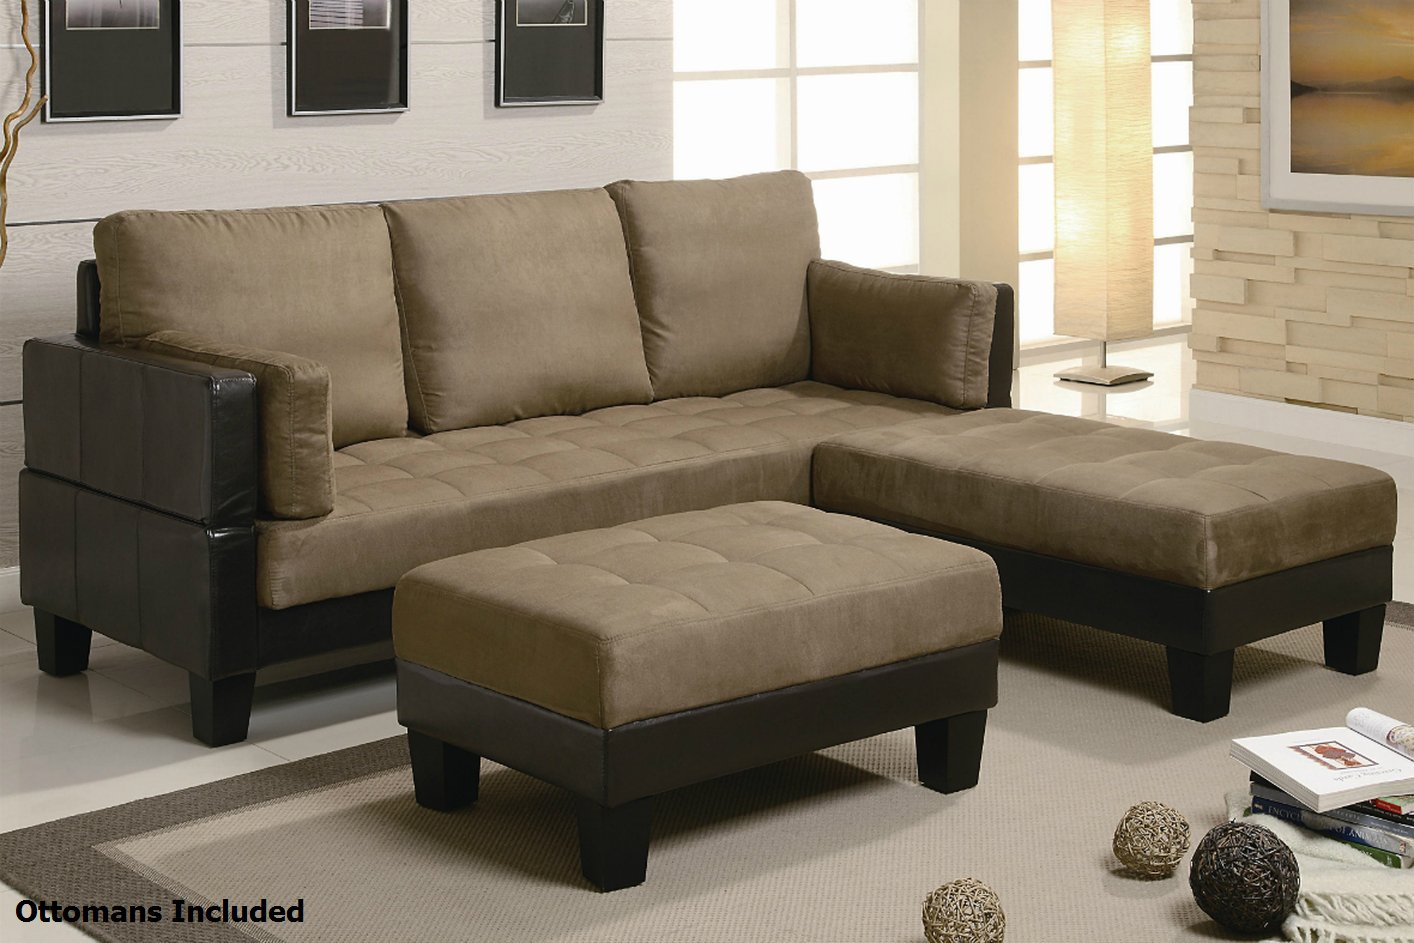 stealasofa reviews double dog ortho sleeper sofa bed coaster 300160 brown fabric sectional and ottoman ...